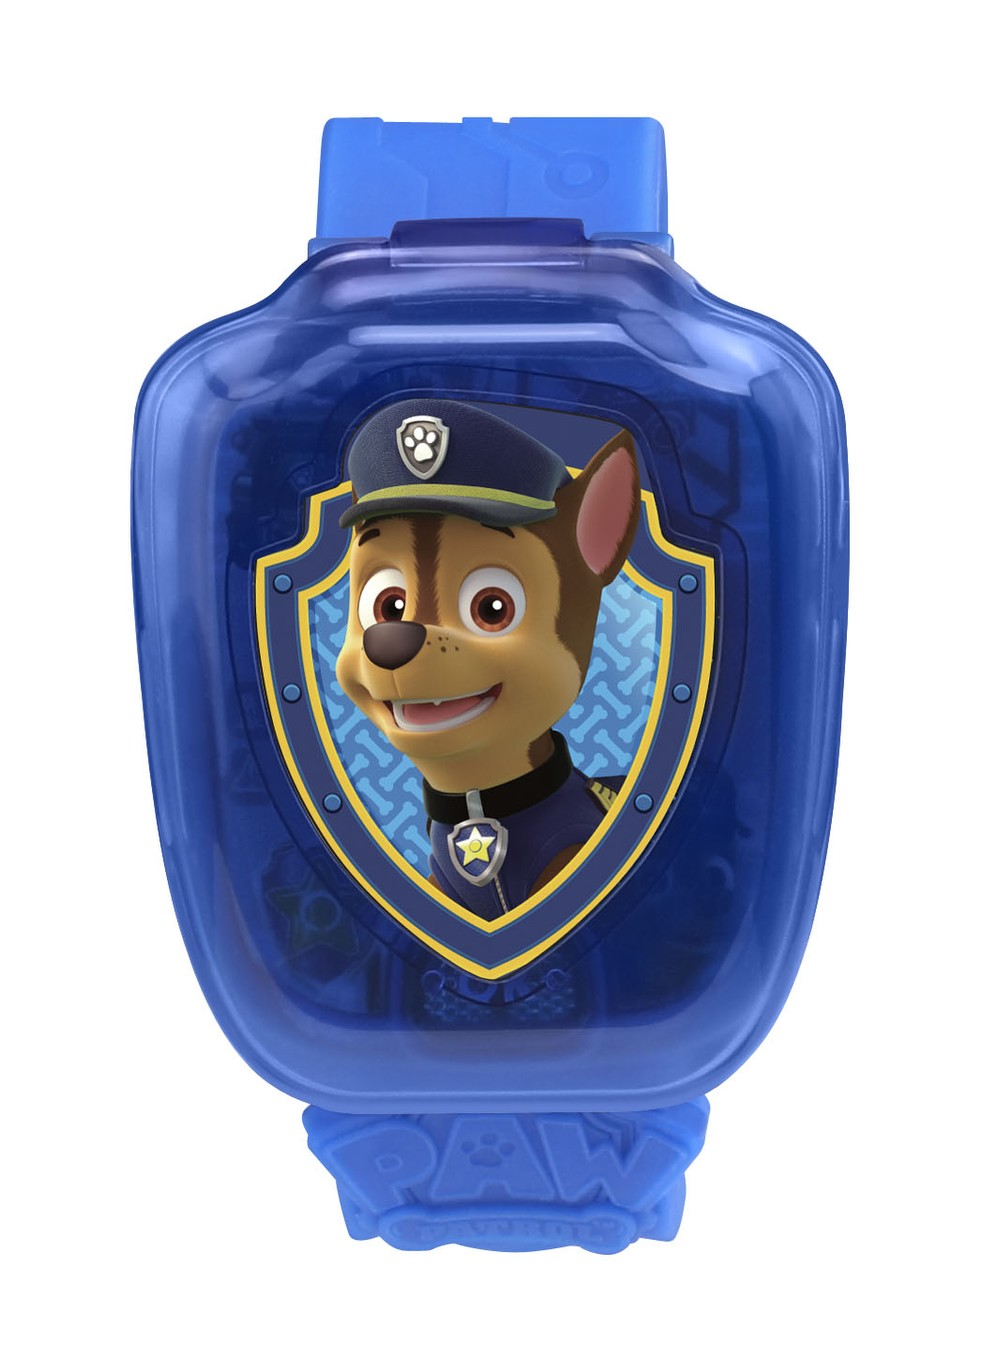 accutime paw patrol watch instructions